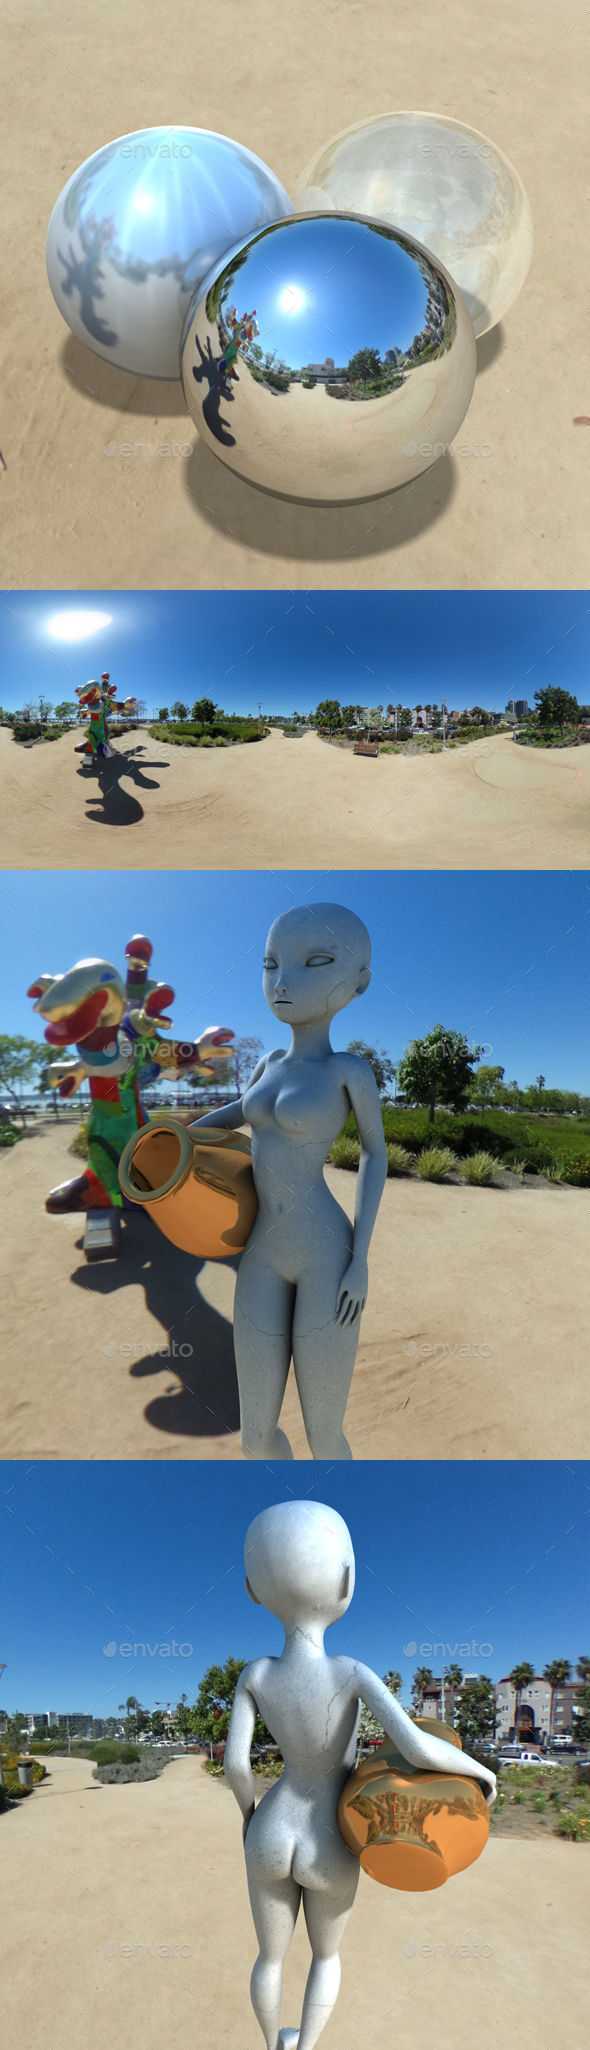 Clear Sky Sculpture Park HDRI - 3DOcean Item for Sale